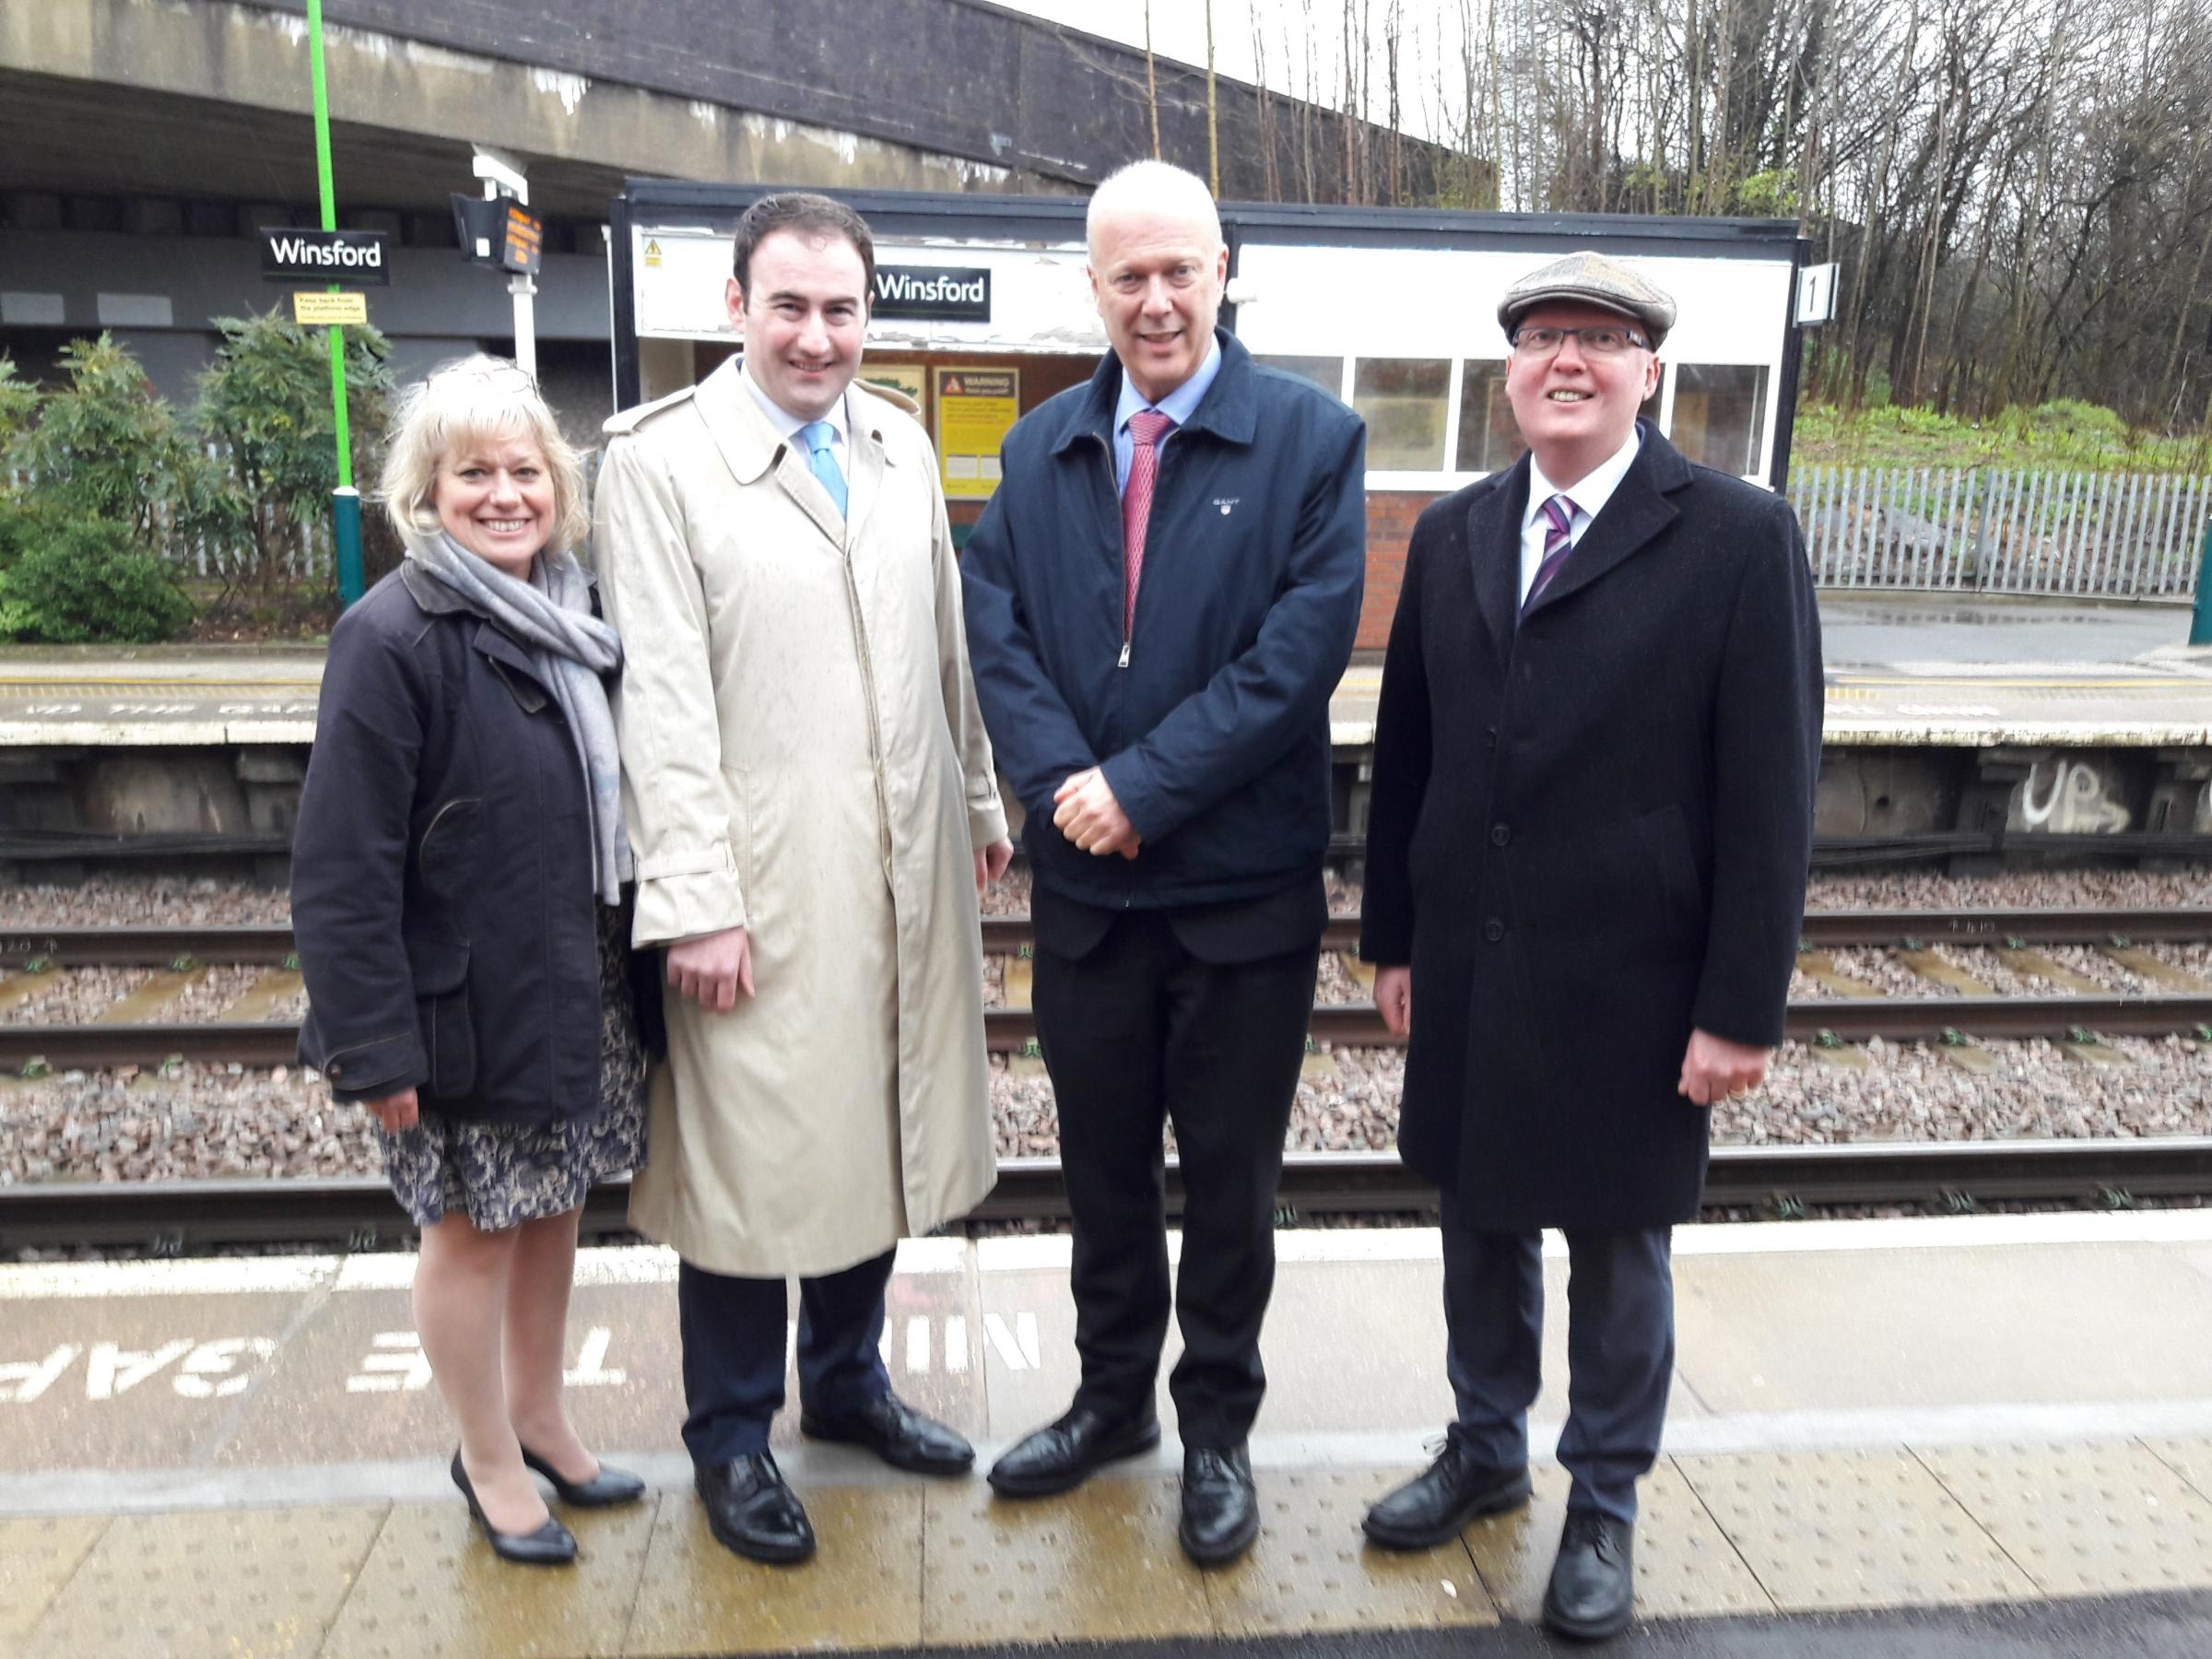 From left: Cllr Lynn Riley, Cllr James Pearson, Chris Grayling MP and Cllr Mike Baynham at Winsford train station